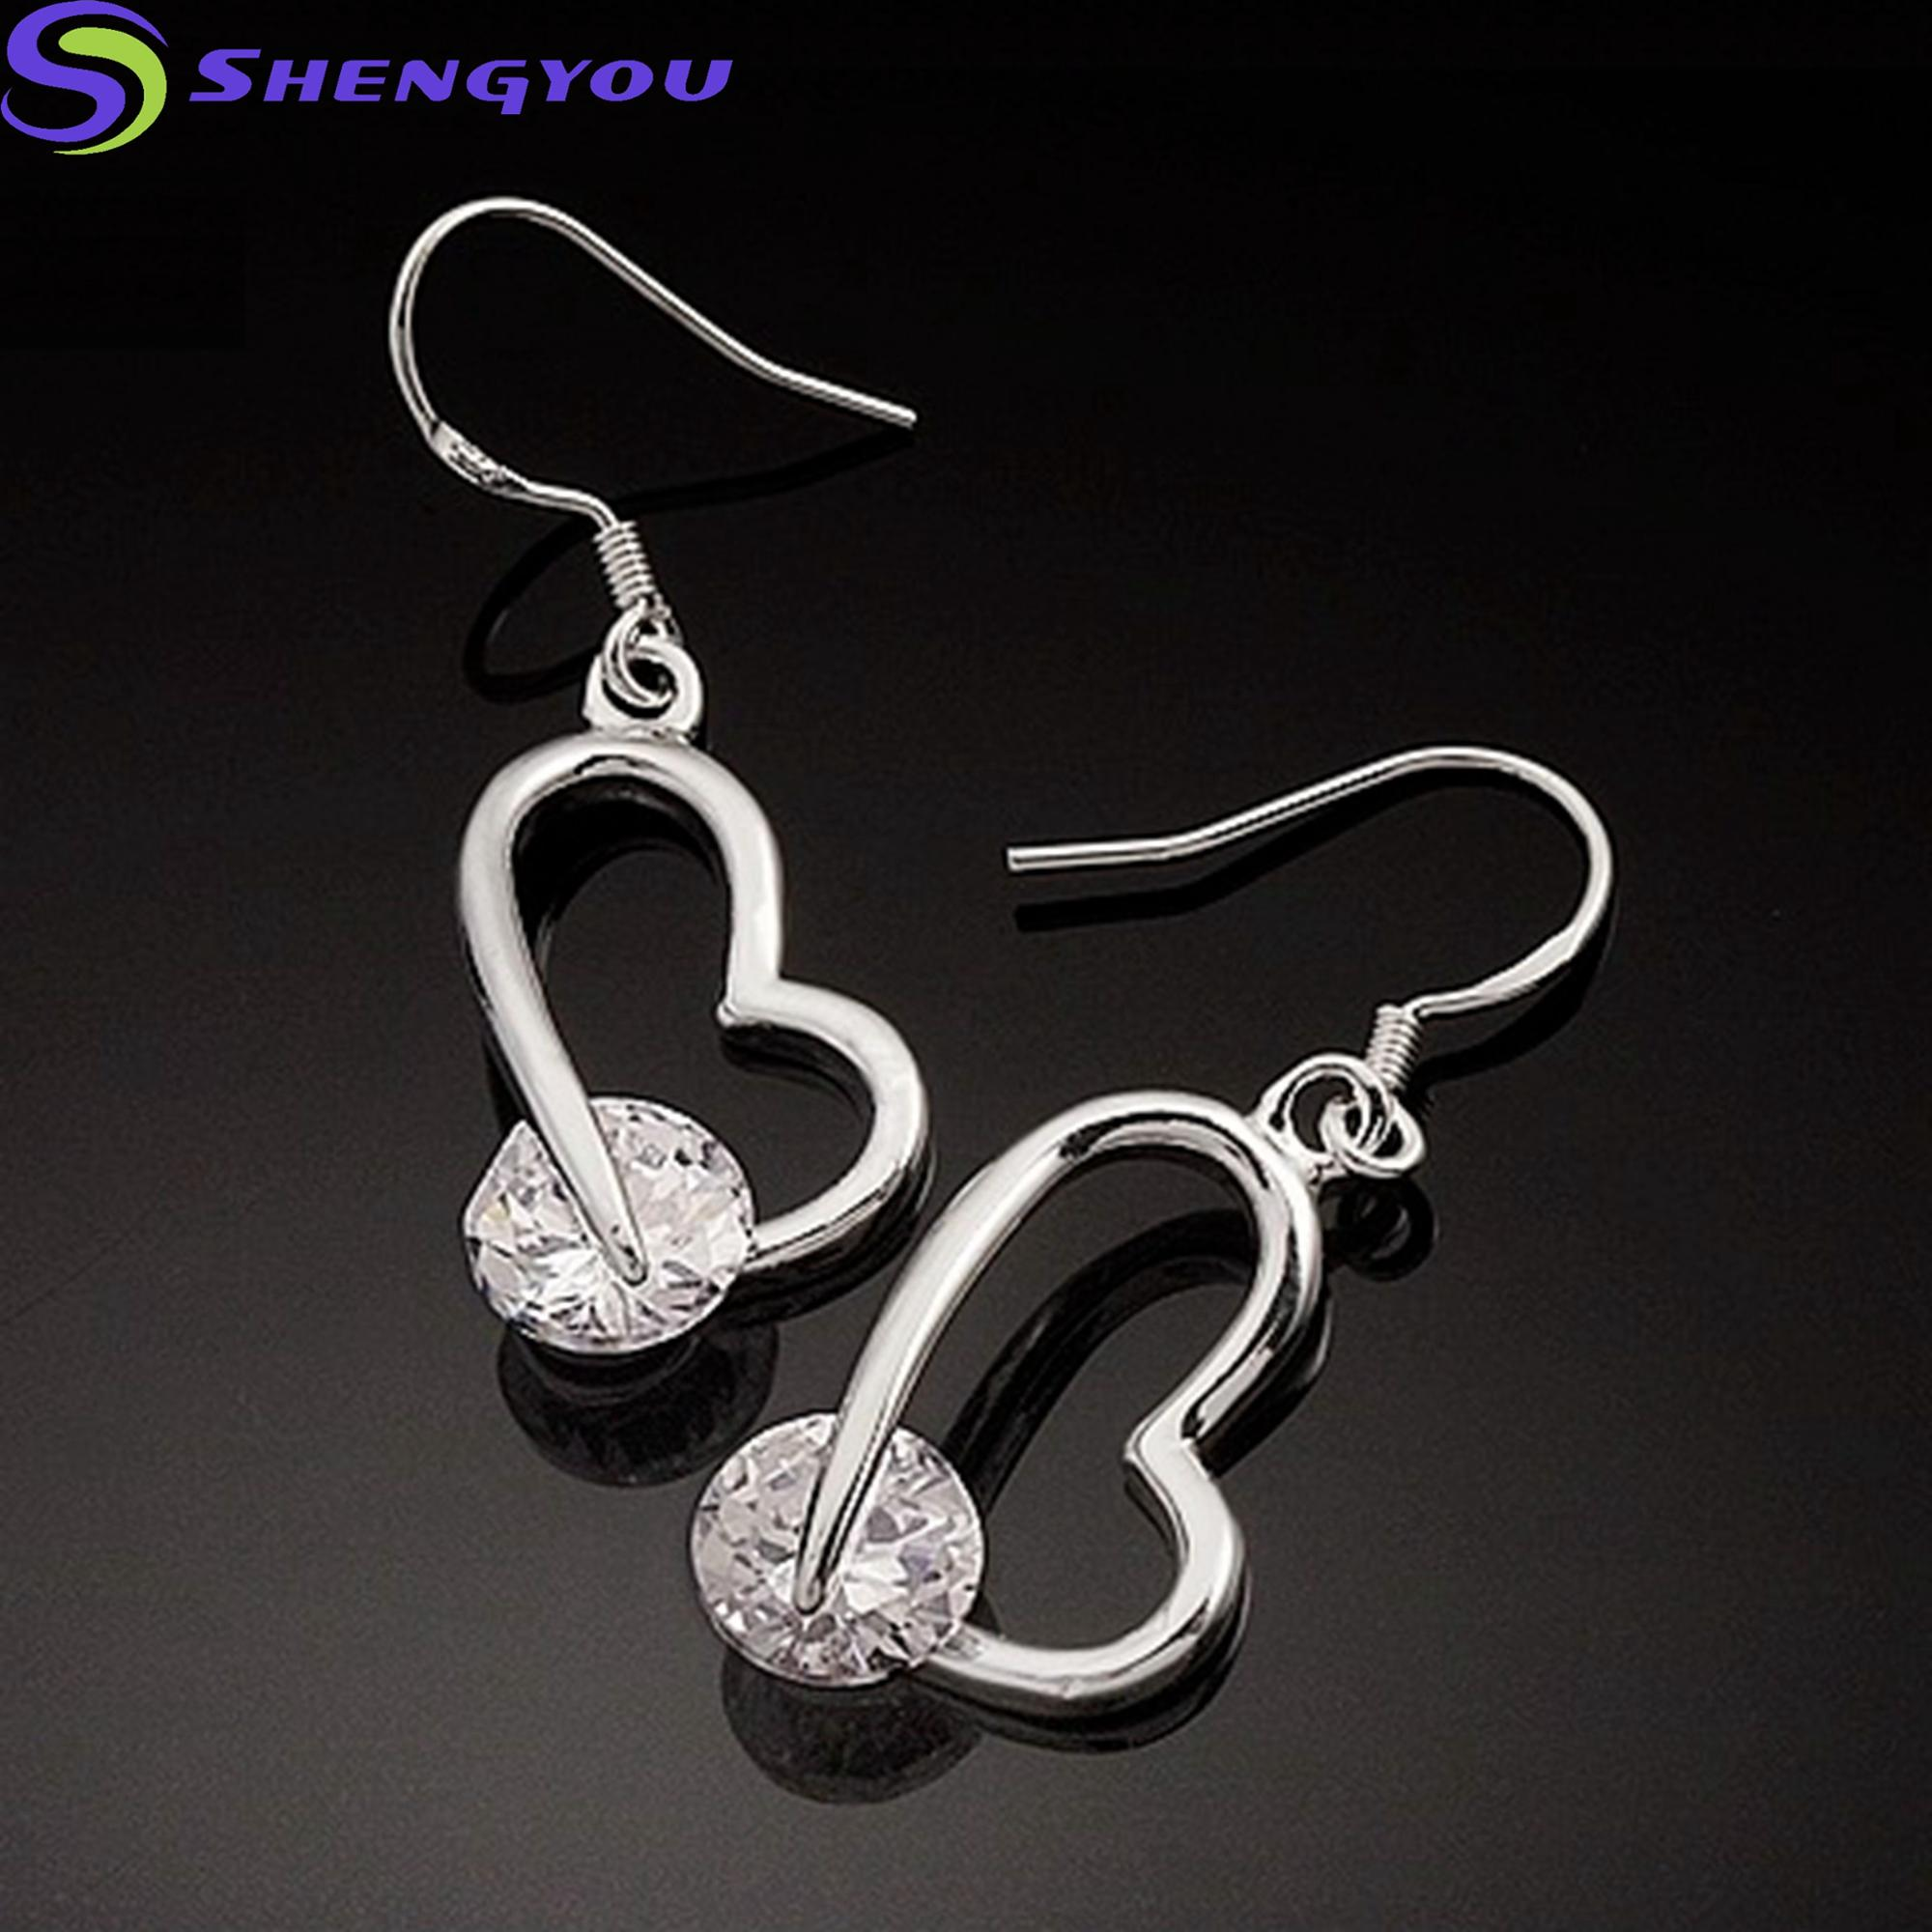 New Trendy Model Fashionable Heart 925 Silver Earrings With Diamond